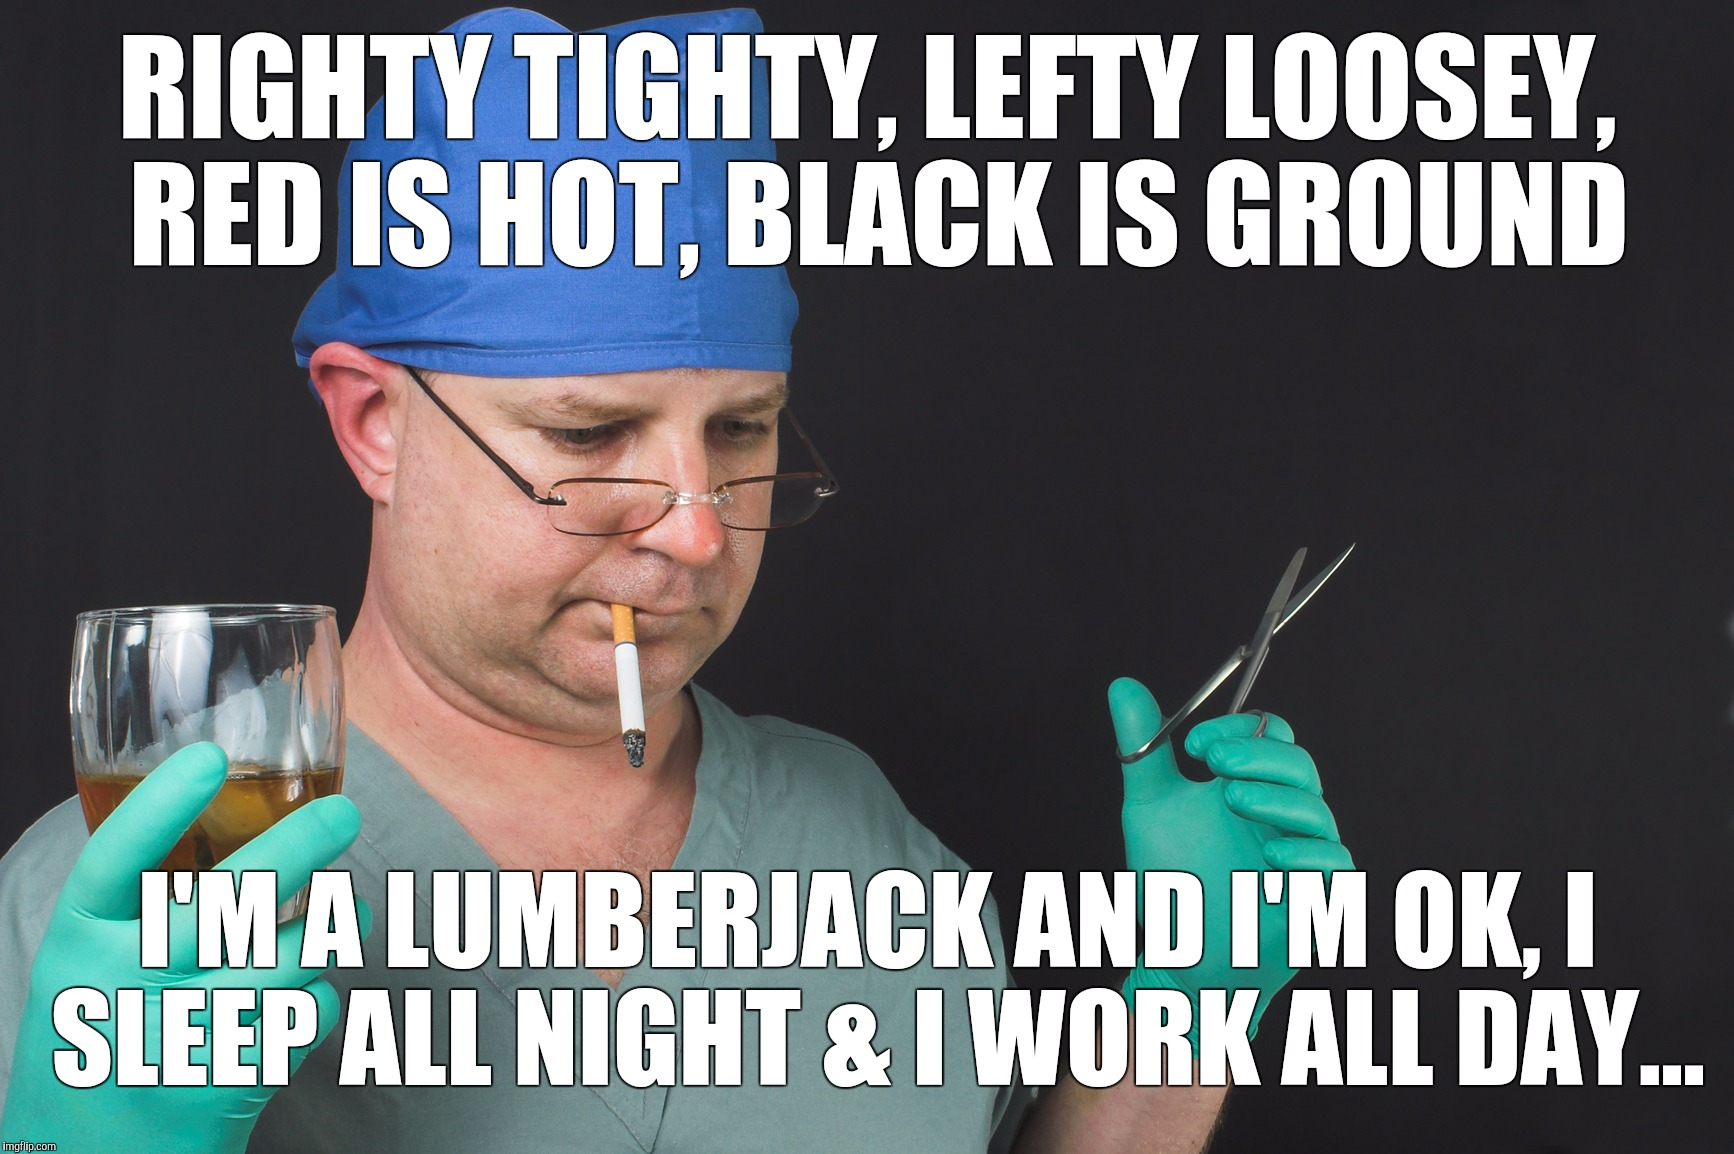 The Amazing Secrets Of The Elite Successful | RIGHTY TIGHTY, LEFTY LOOSEY, RED IS HOT, BLACK IS GROUND I'M A LUMBERJACK AND I'M OK, I SLEEP ALL NIGHT & I WORK ALL DAY... | image tagged in big time operator | made w/ Imgflip meme maker